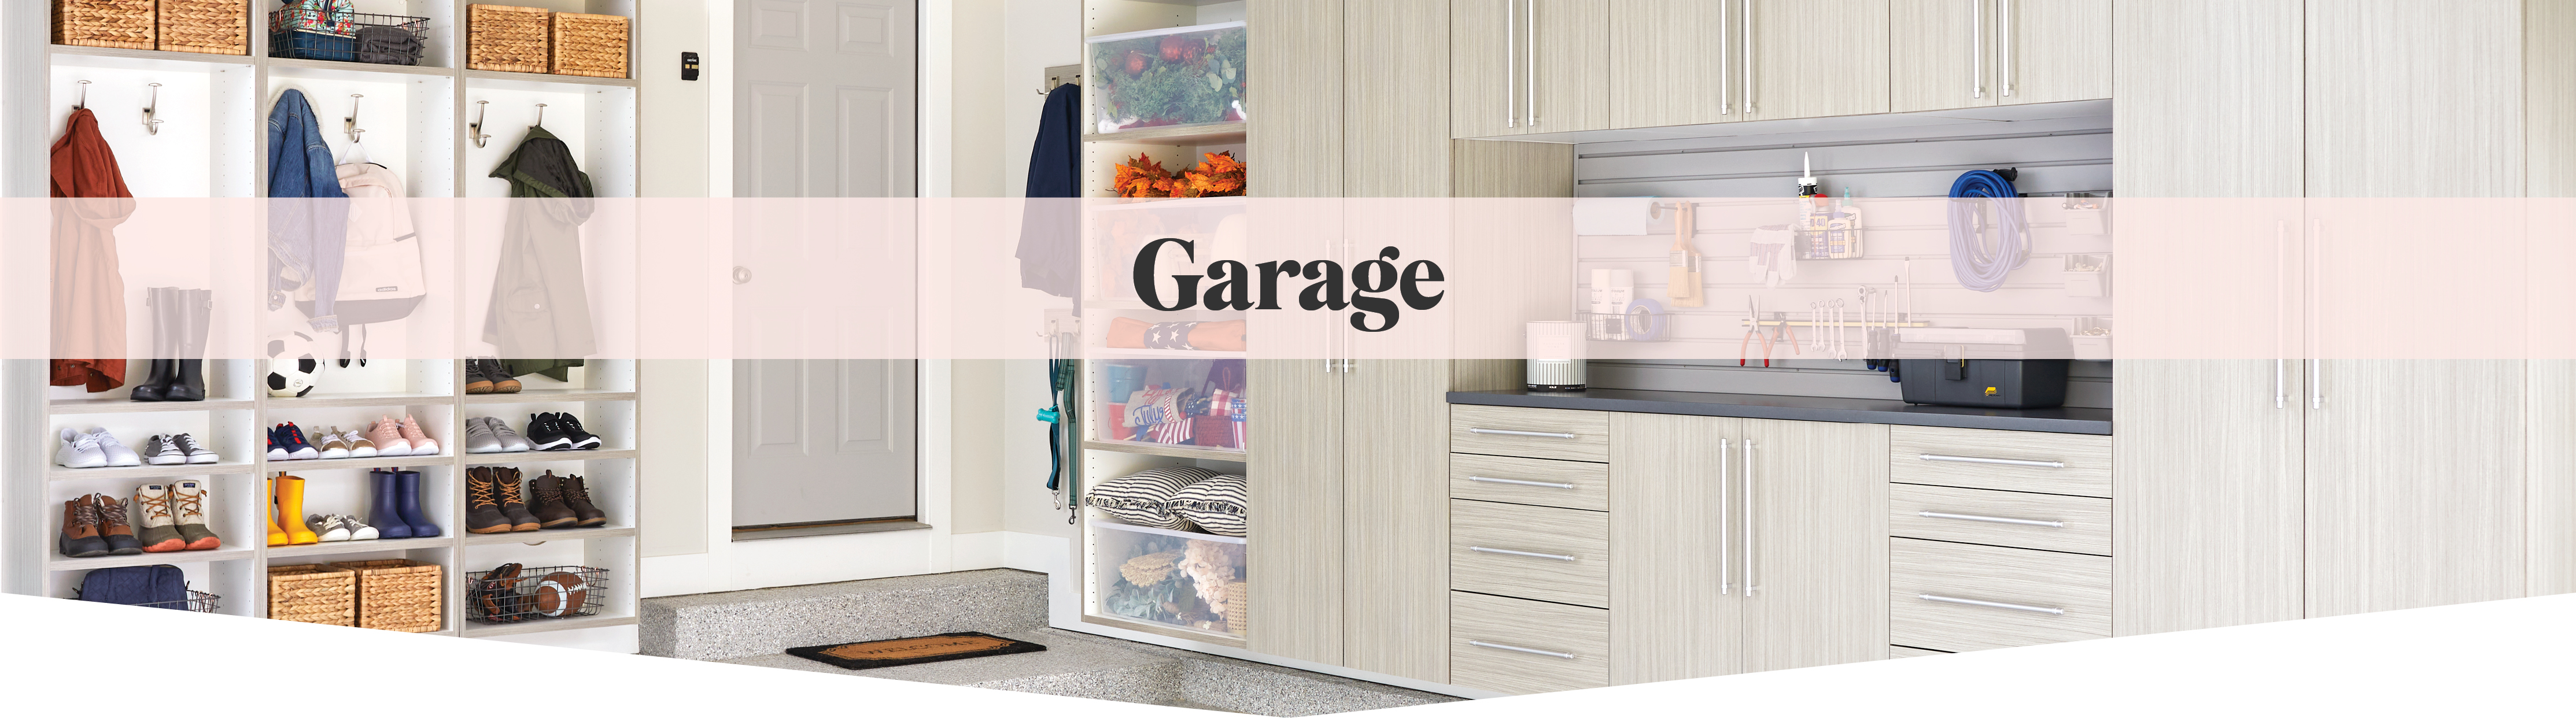 Custom garage solutions for entryways from Inspired Closets